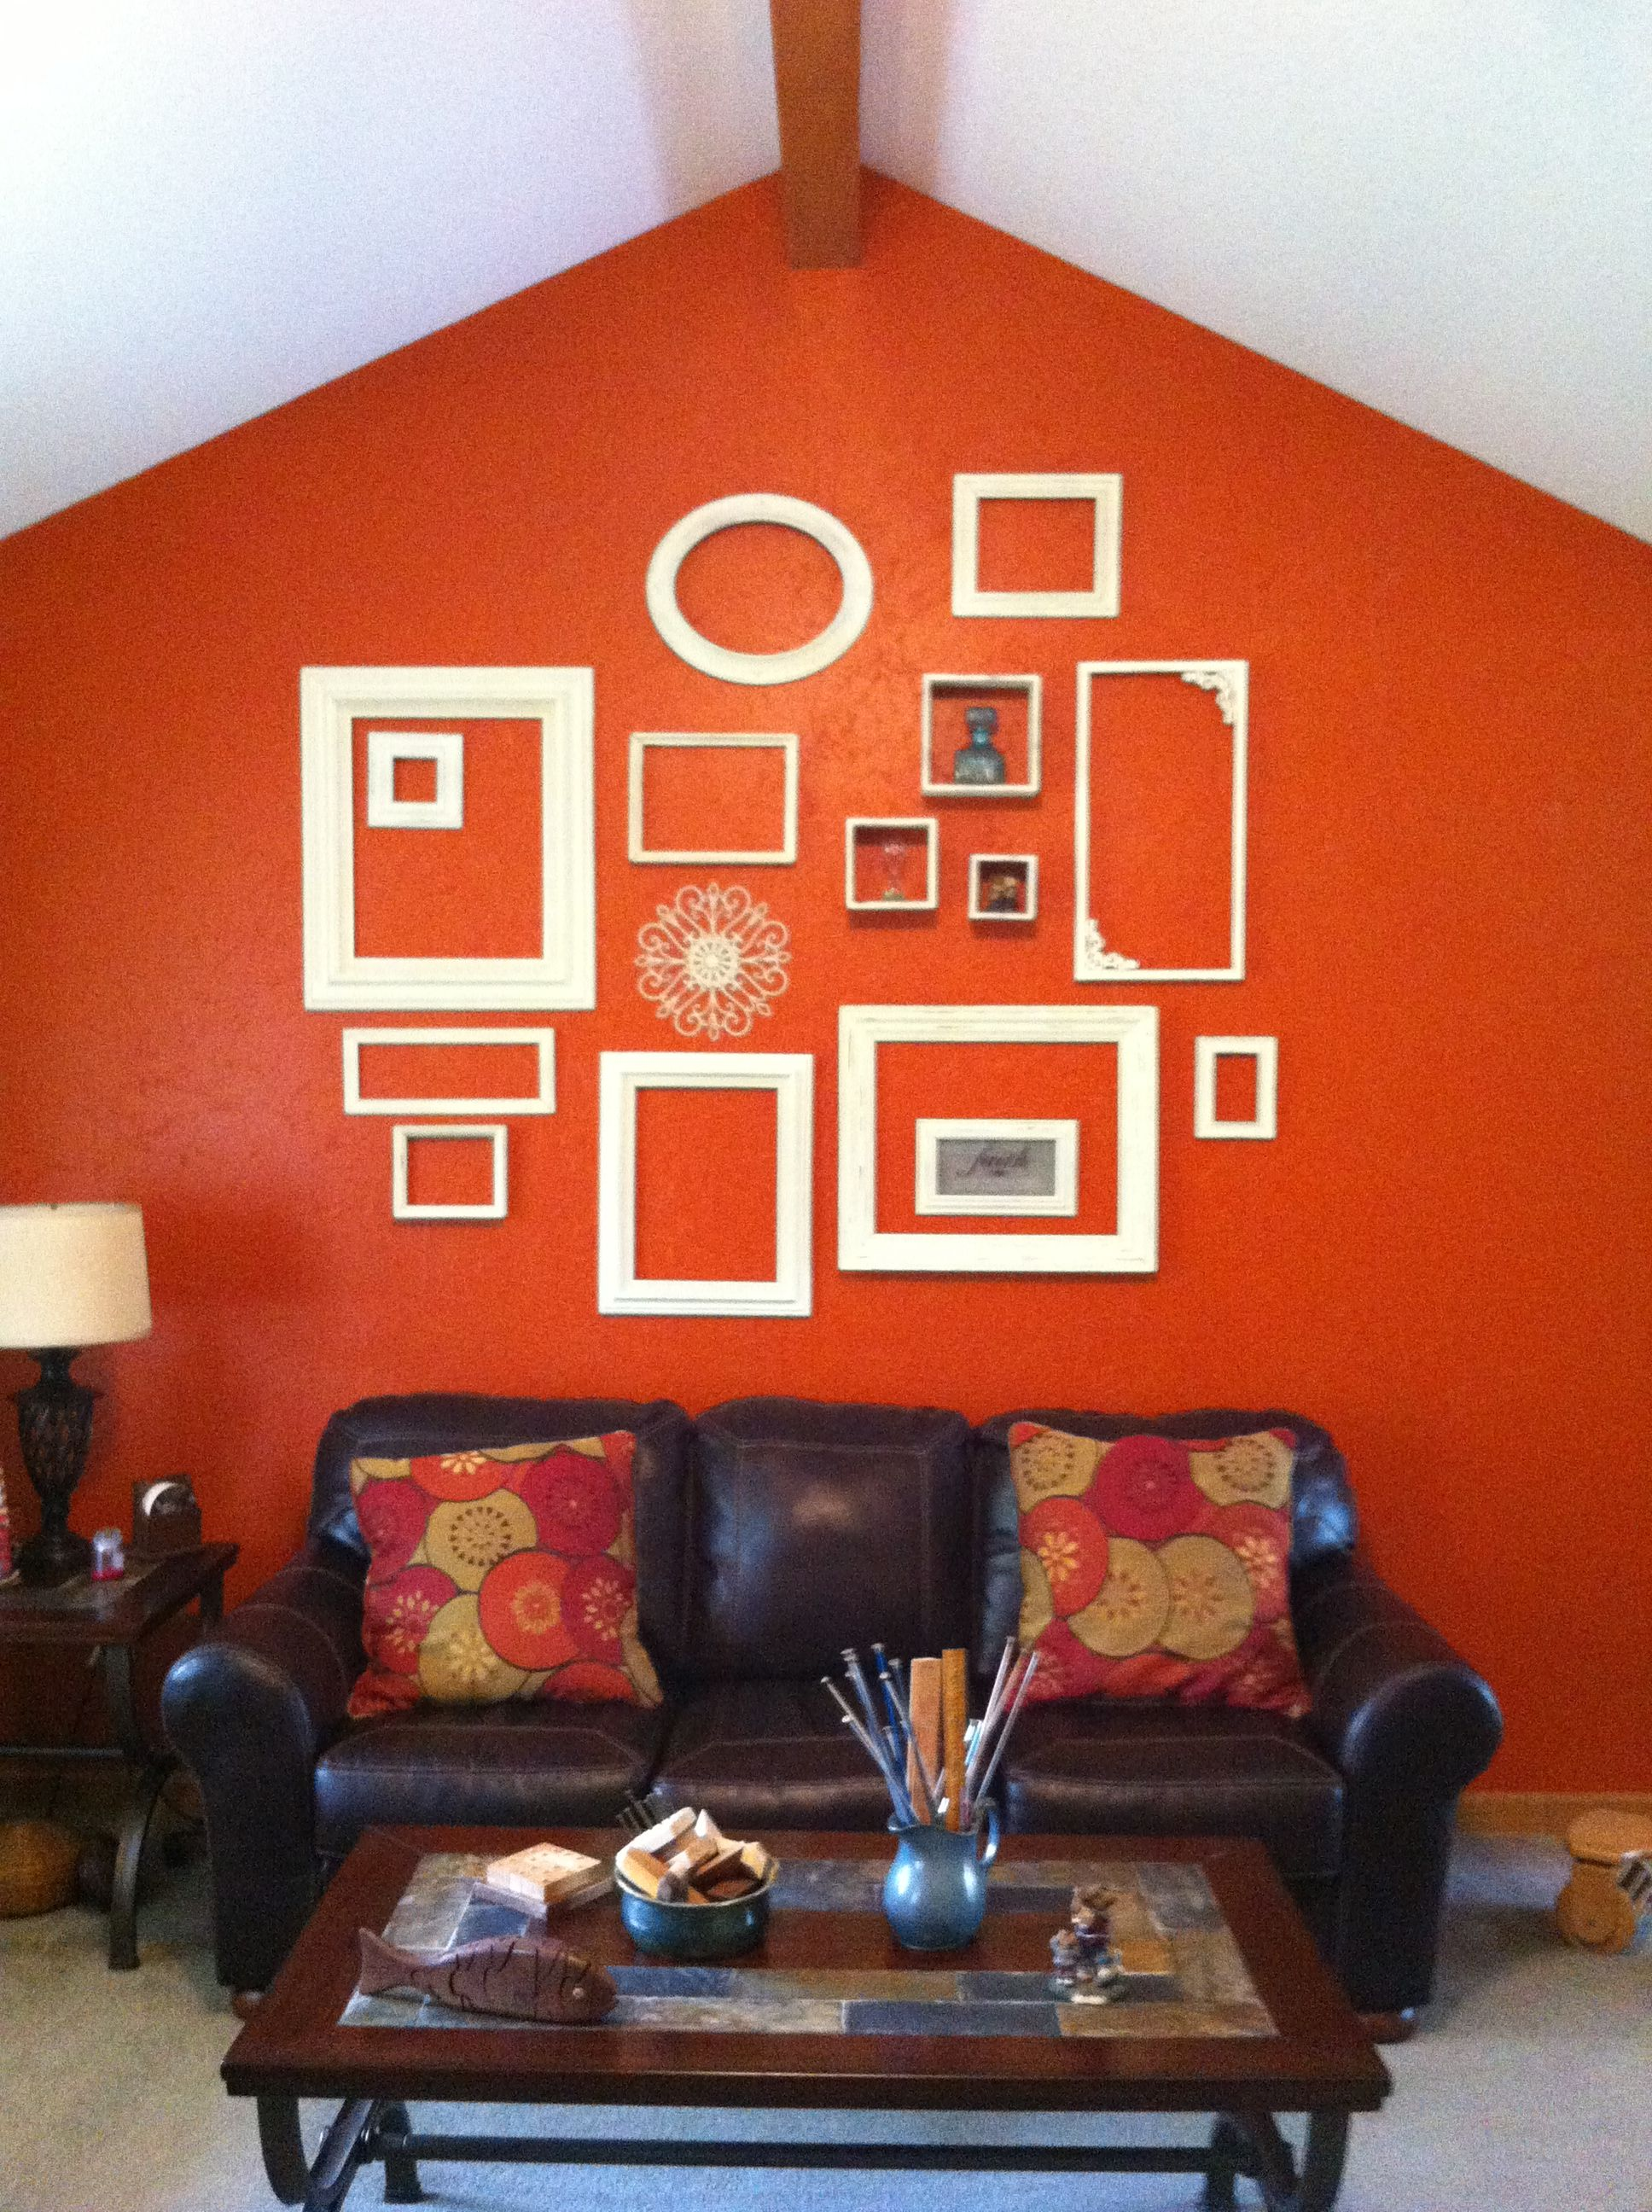 My Living Room Wall Inspired By Pinterest Burnt Orange